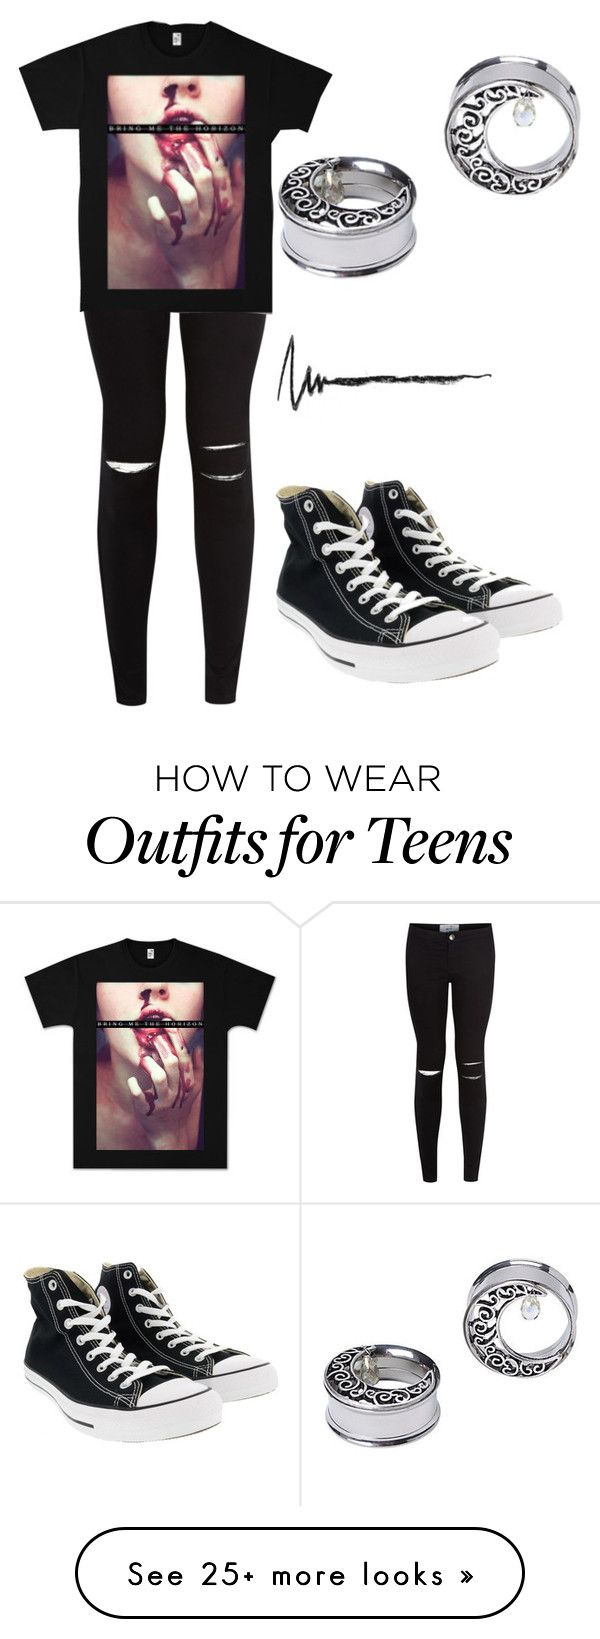 best images about outfits for teens on pinterest topshop steve